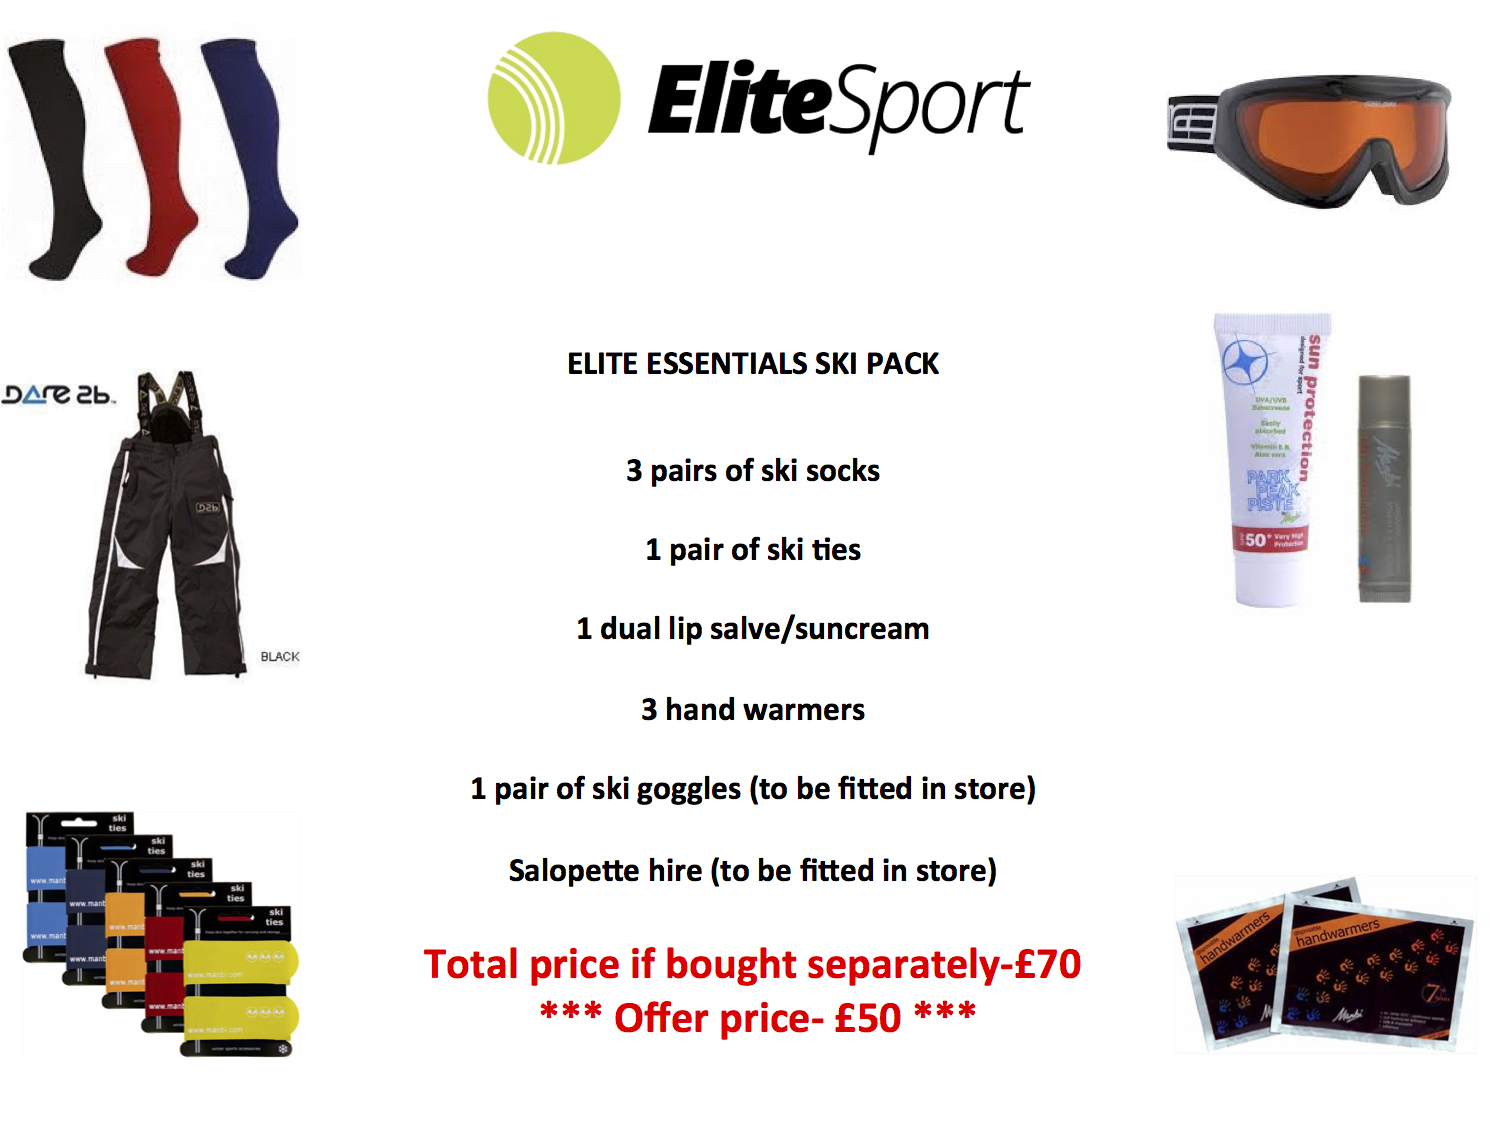 Elite Essentials Ski pack with free salopette hire